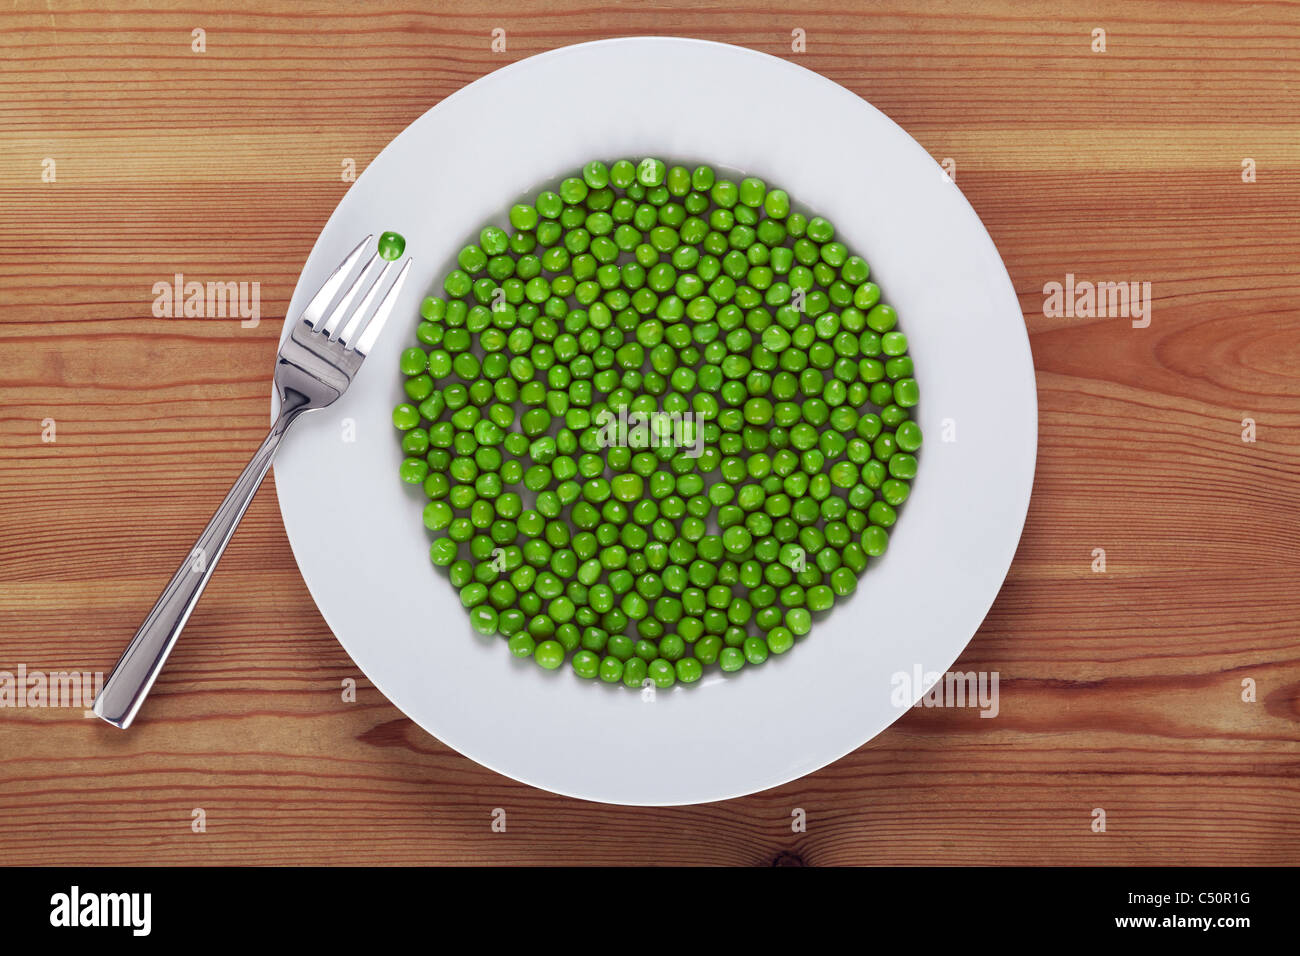 Photo of green peas on a white plate with a fork on a rustic wooden table. - Stock Image